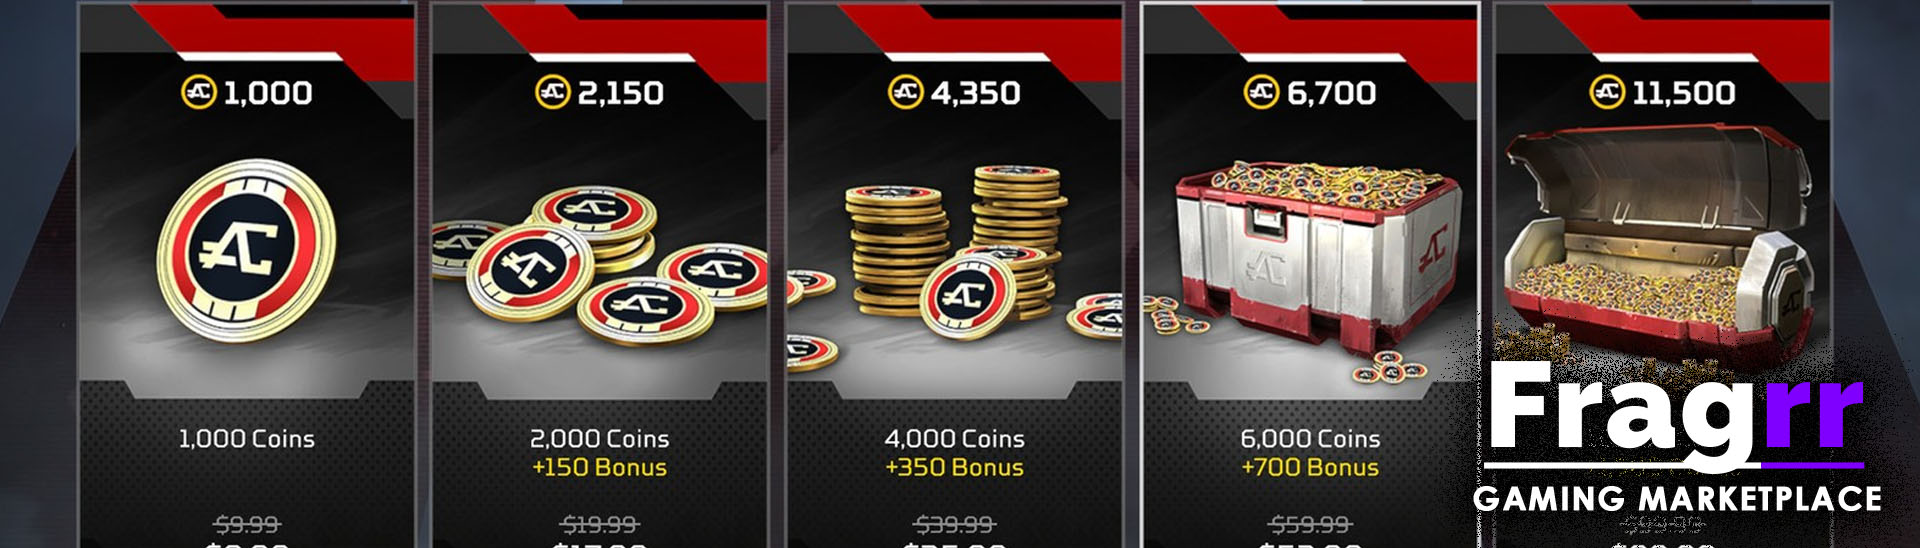 Apex Legends coins, tokens and metals